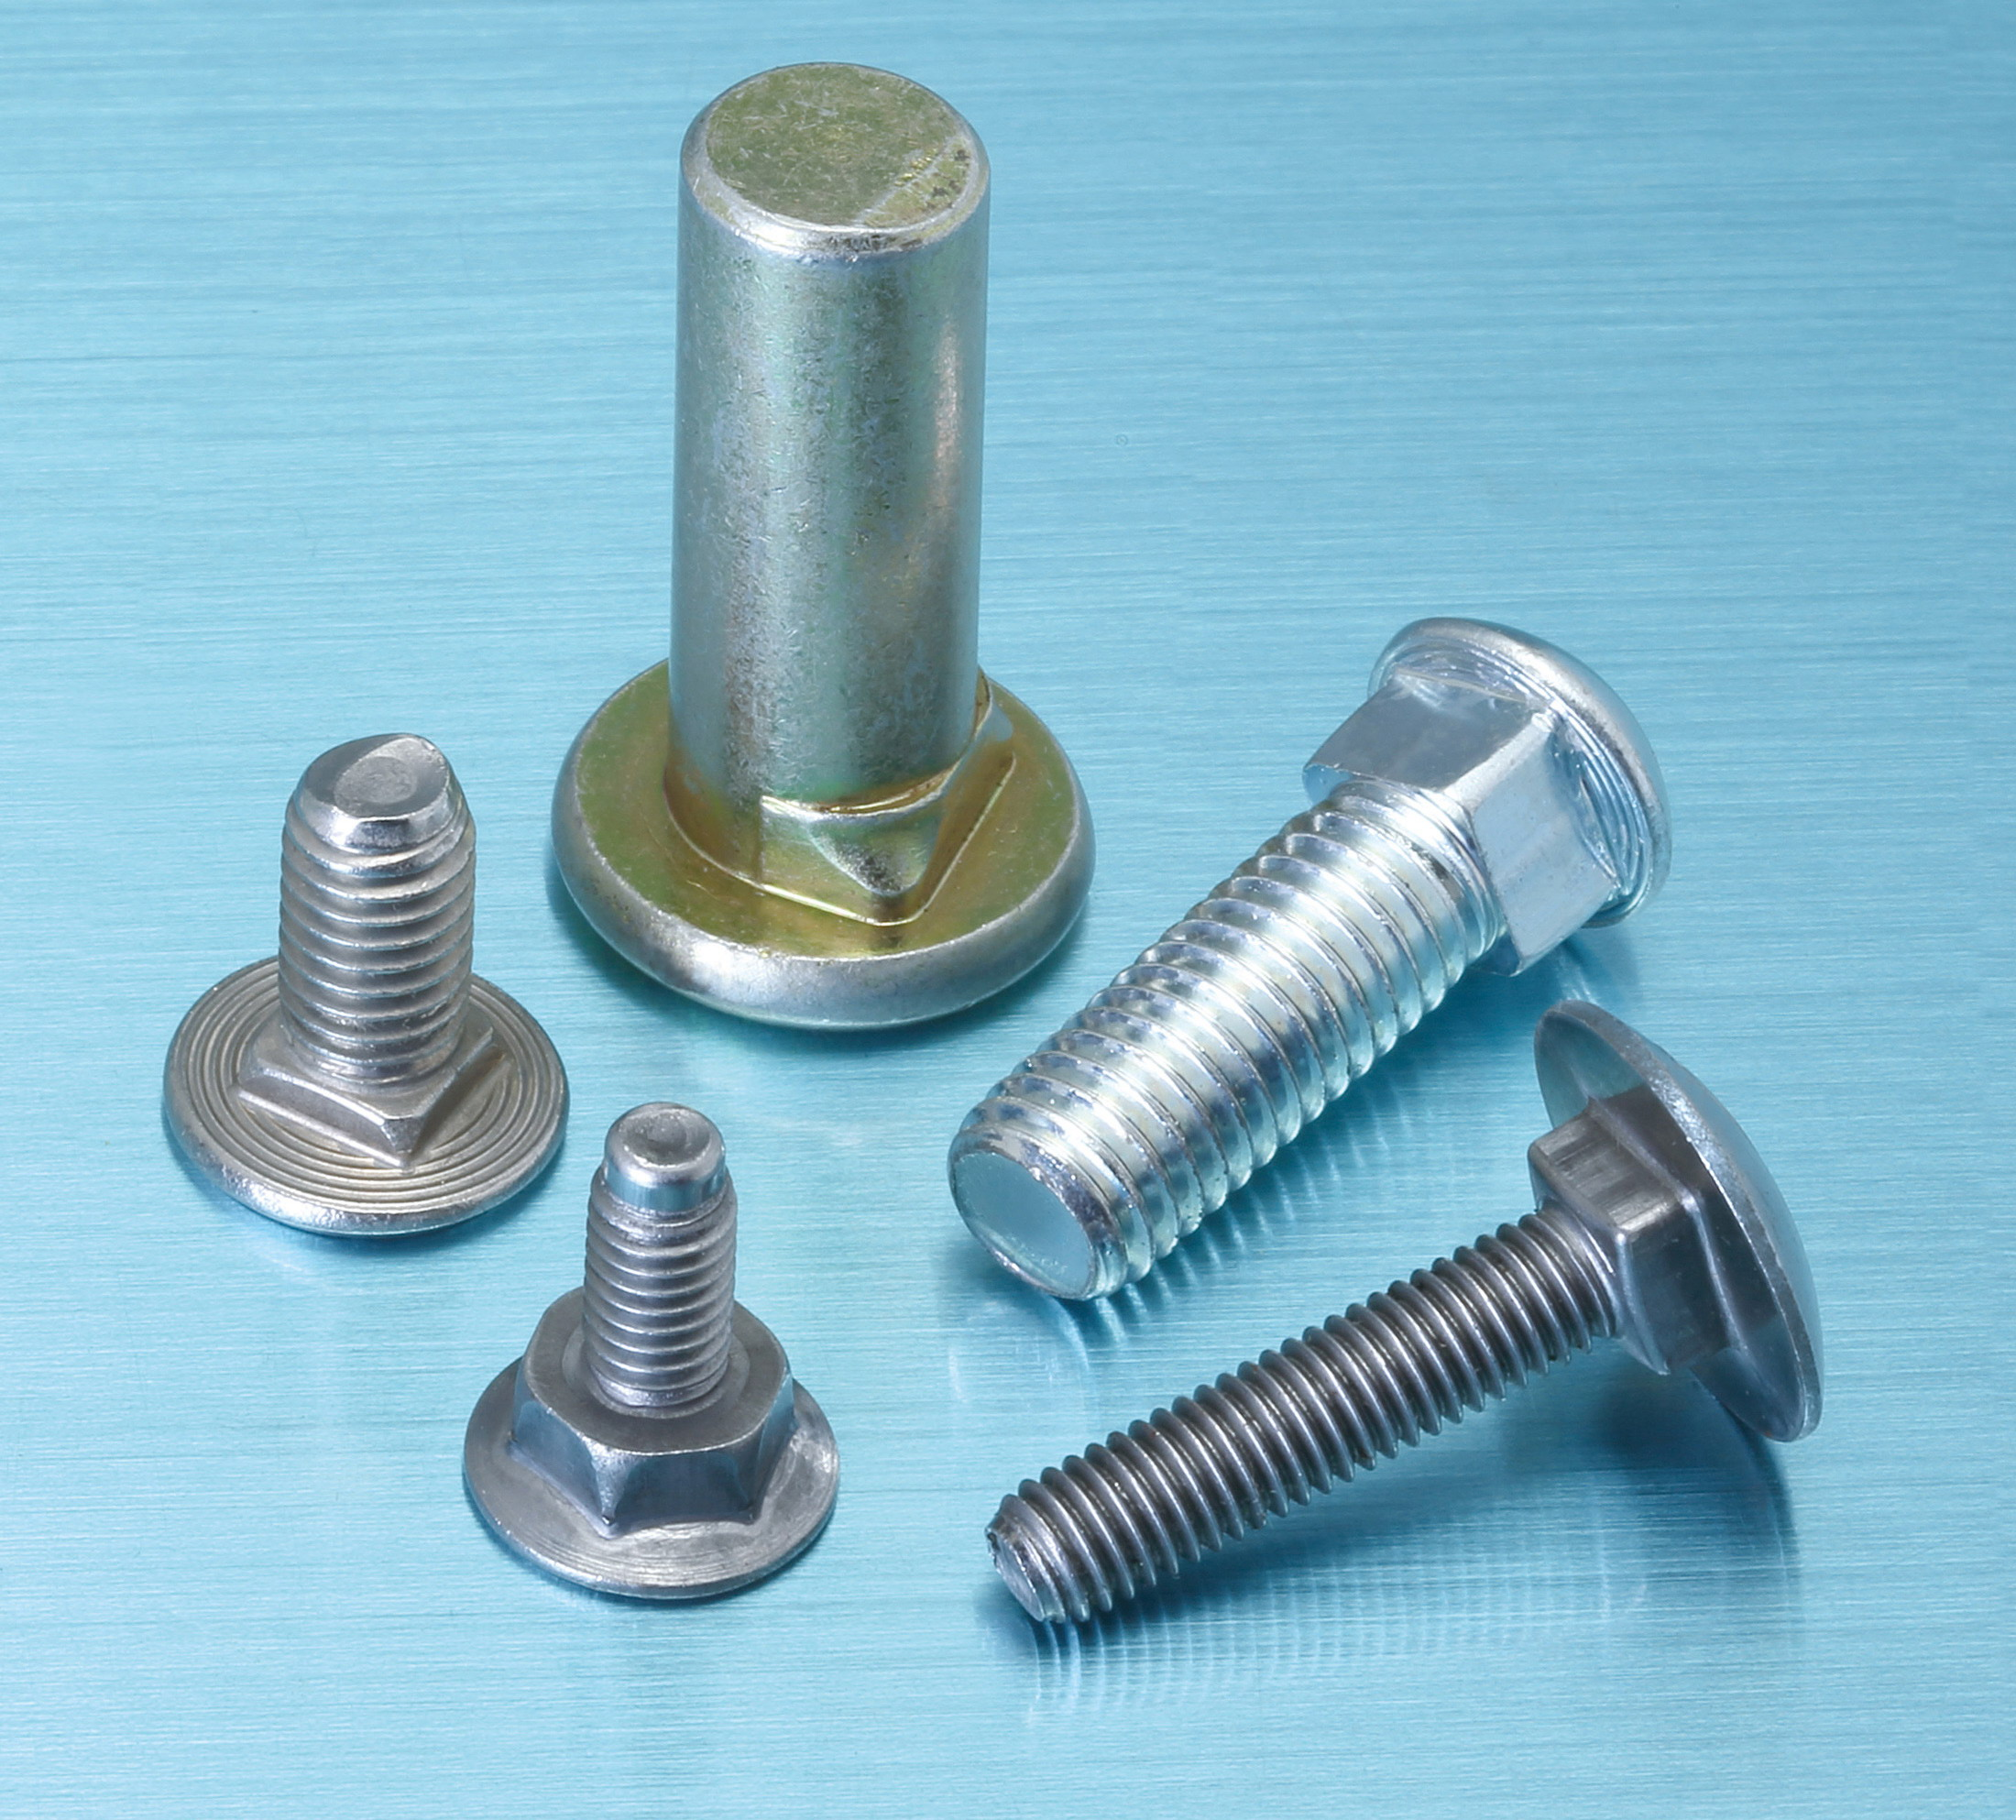 Special Carriage screws